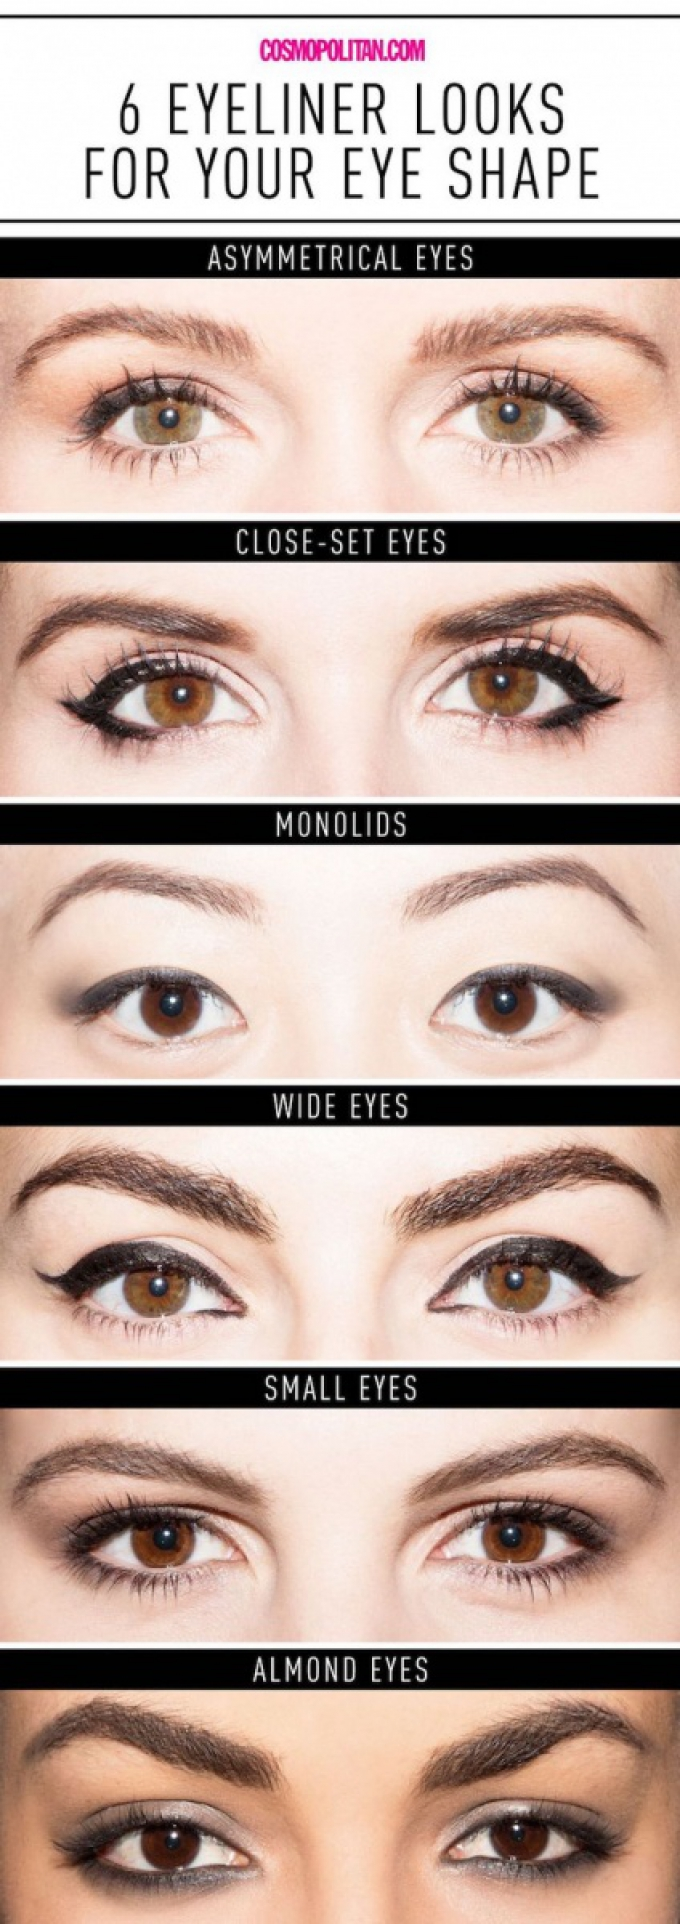 21 Eyeliner Tips You Need To Try For The Most Beautiful Eyes Ever